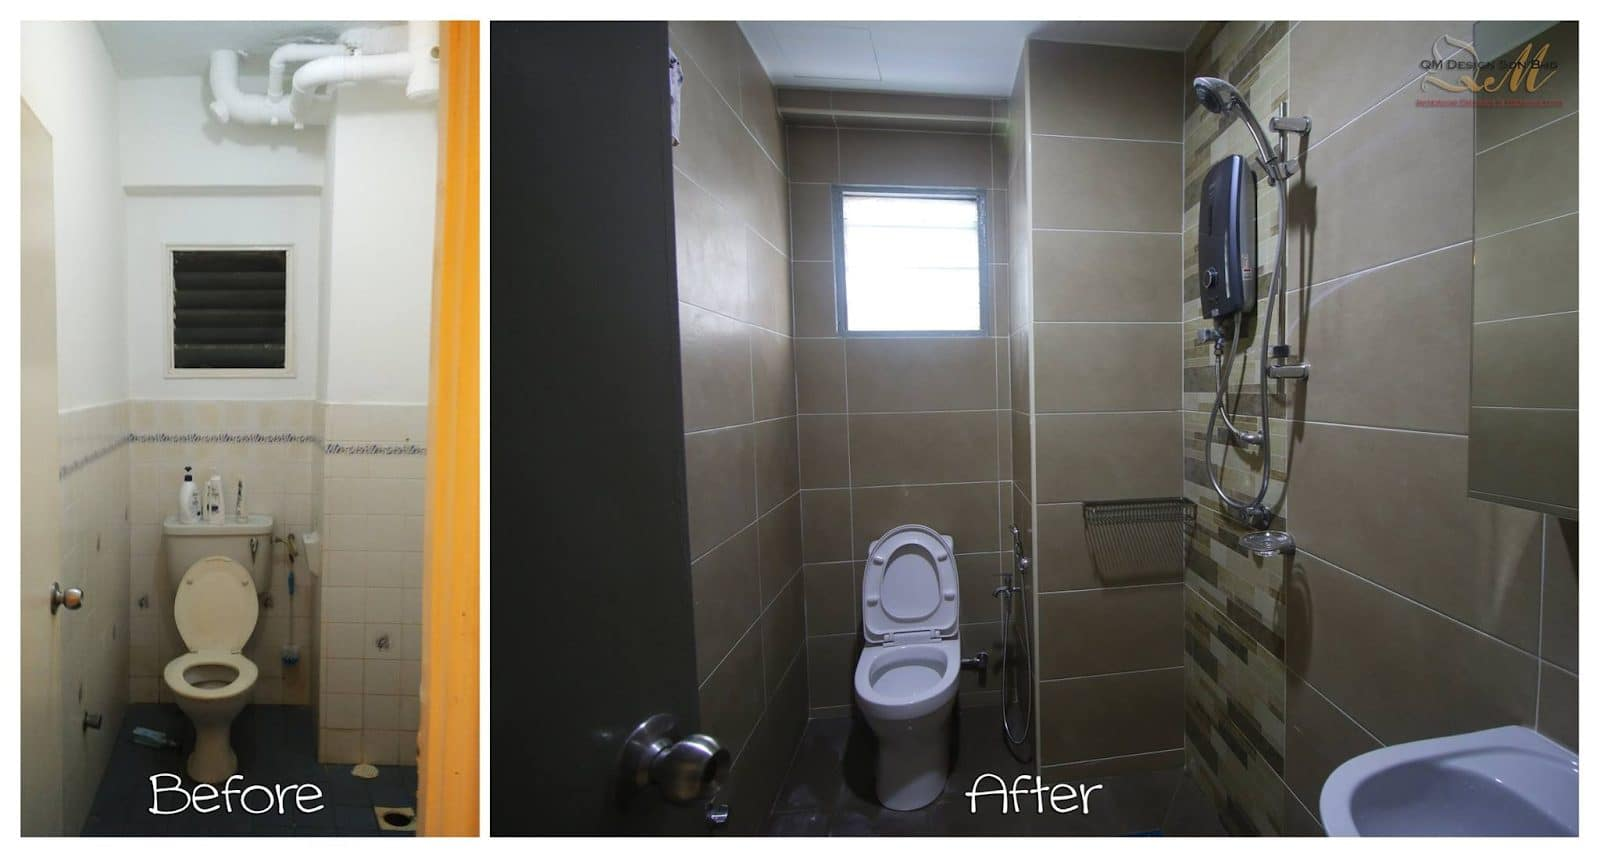 Bathroom refurbishing at Pandan Cheras